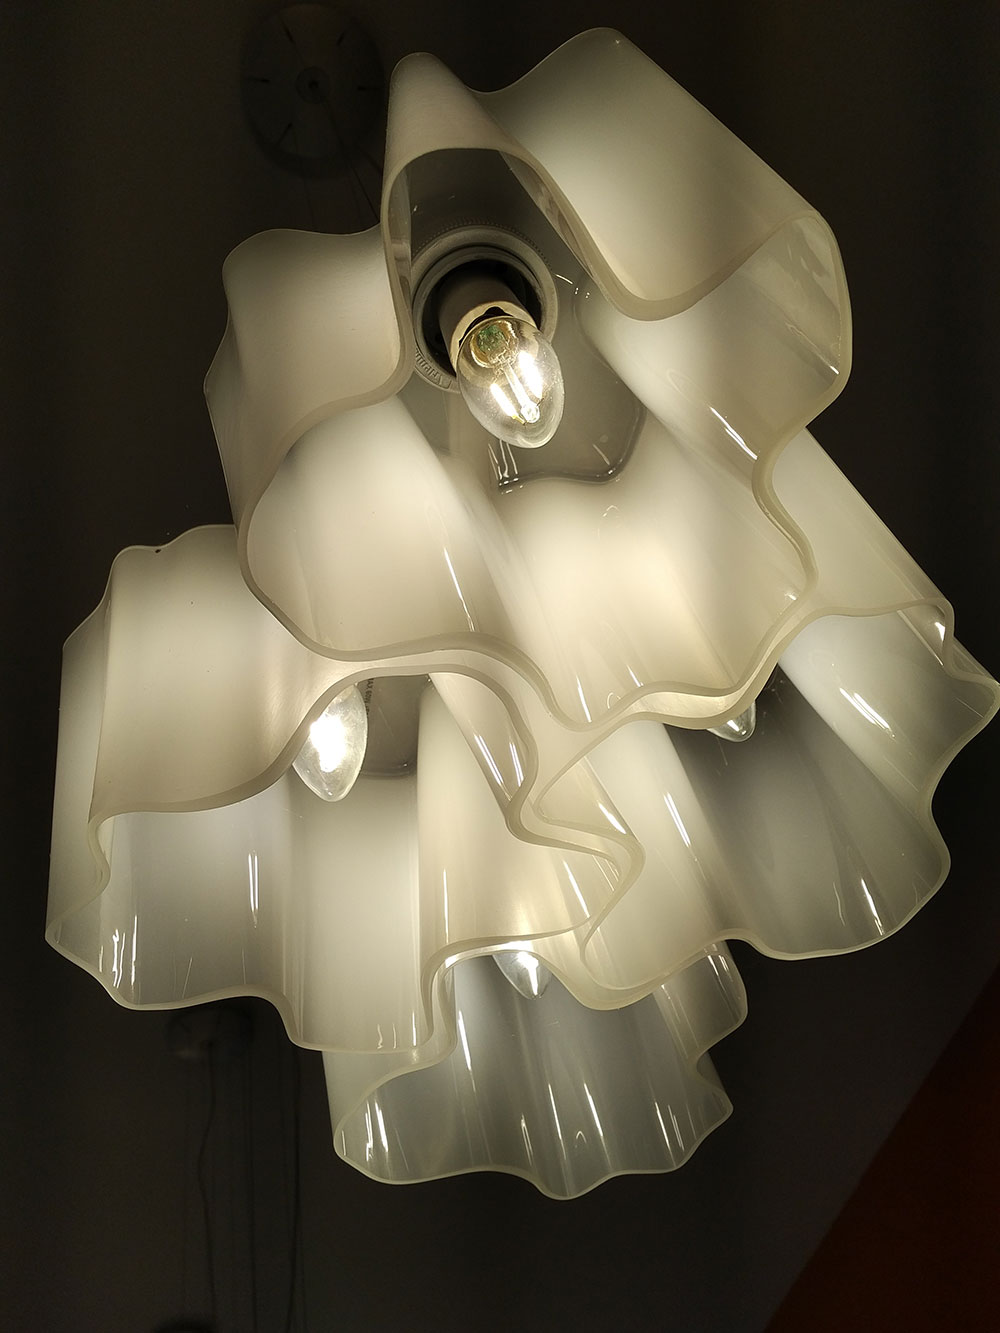 A more modern light fitting, again made of glass